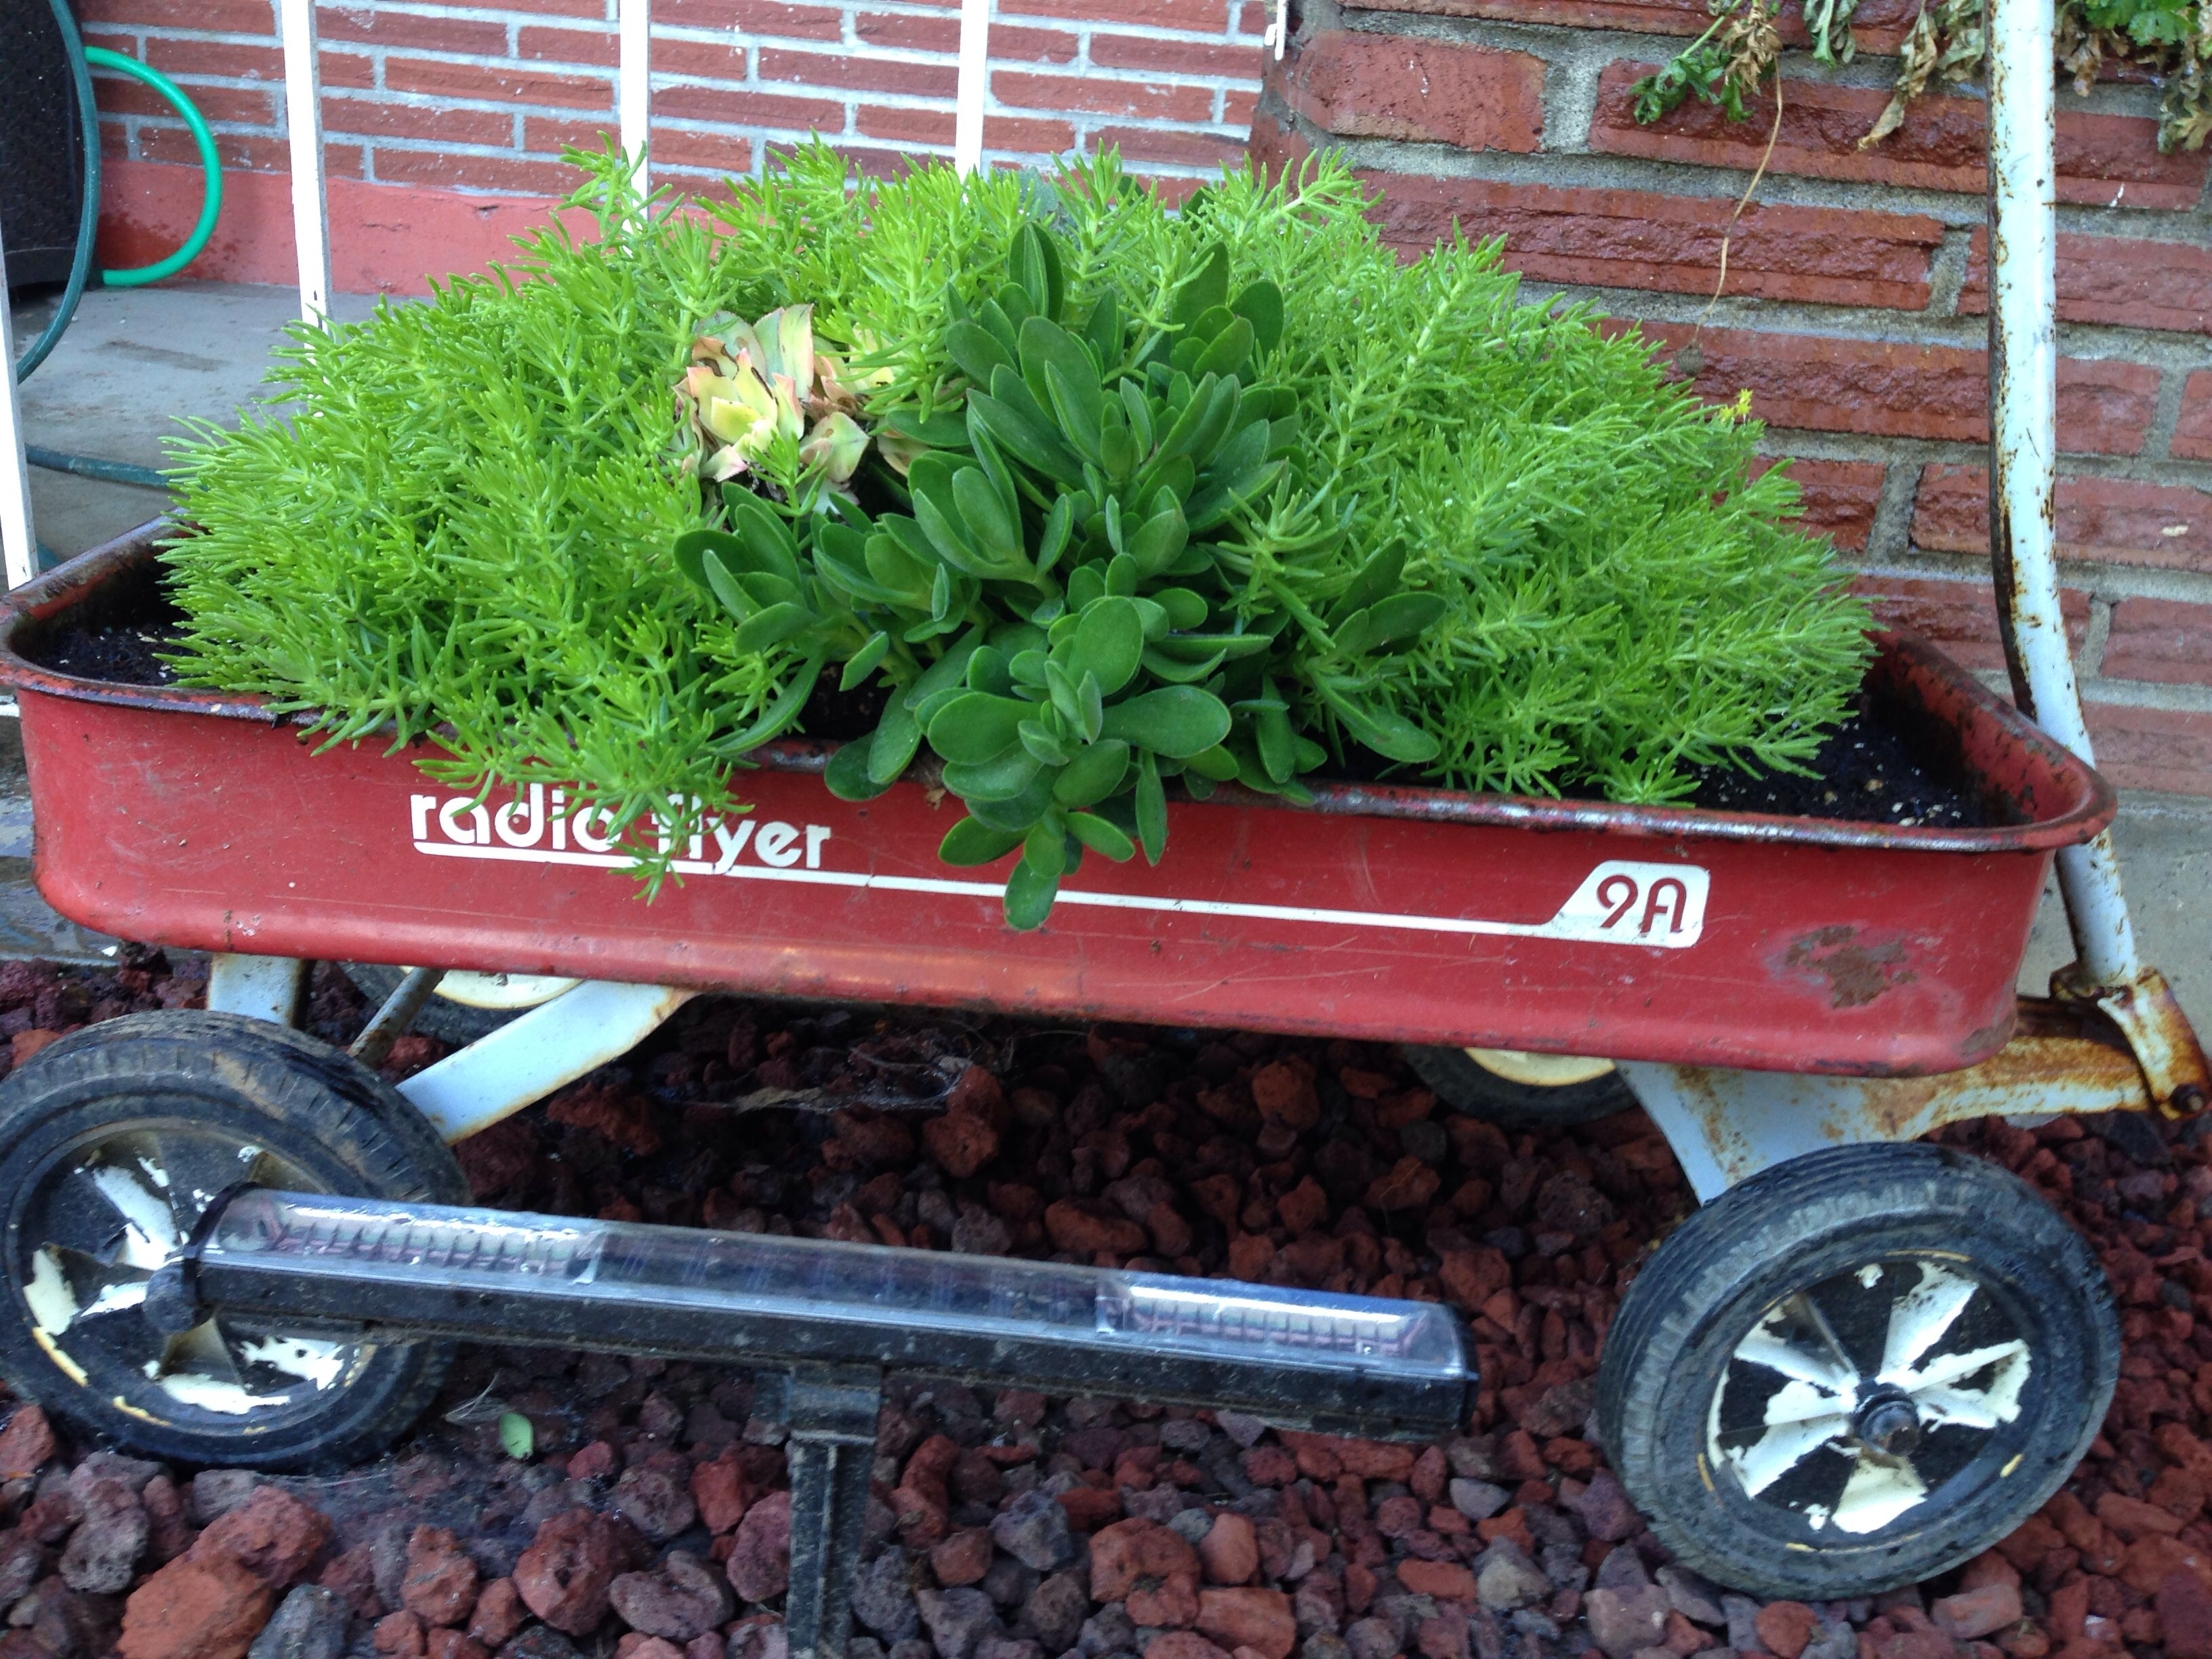 One Of The Vintage Radio Flyer Wagon Planter Container Garden